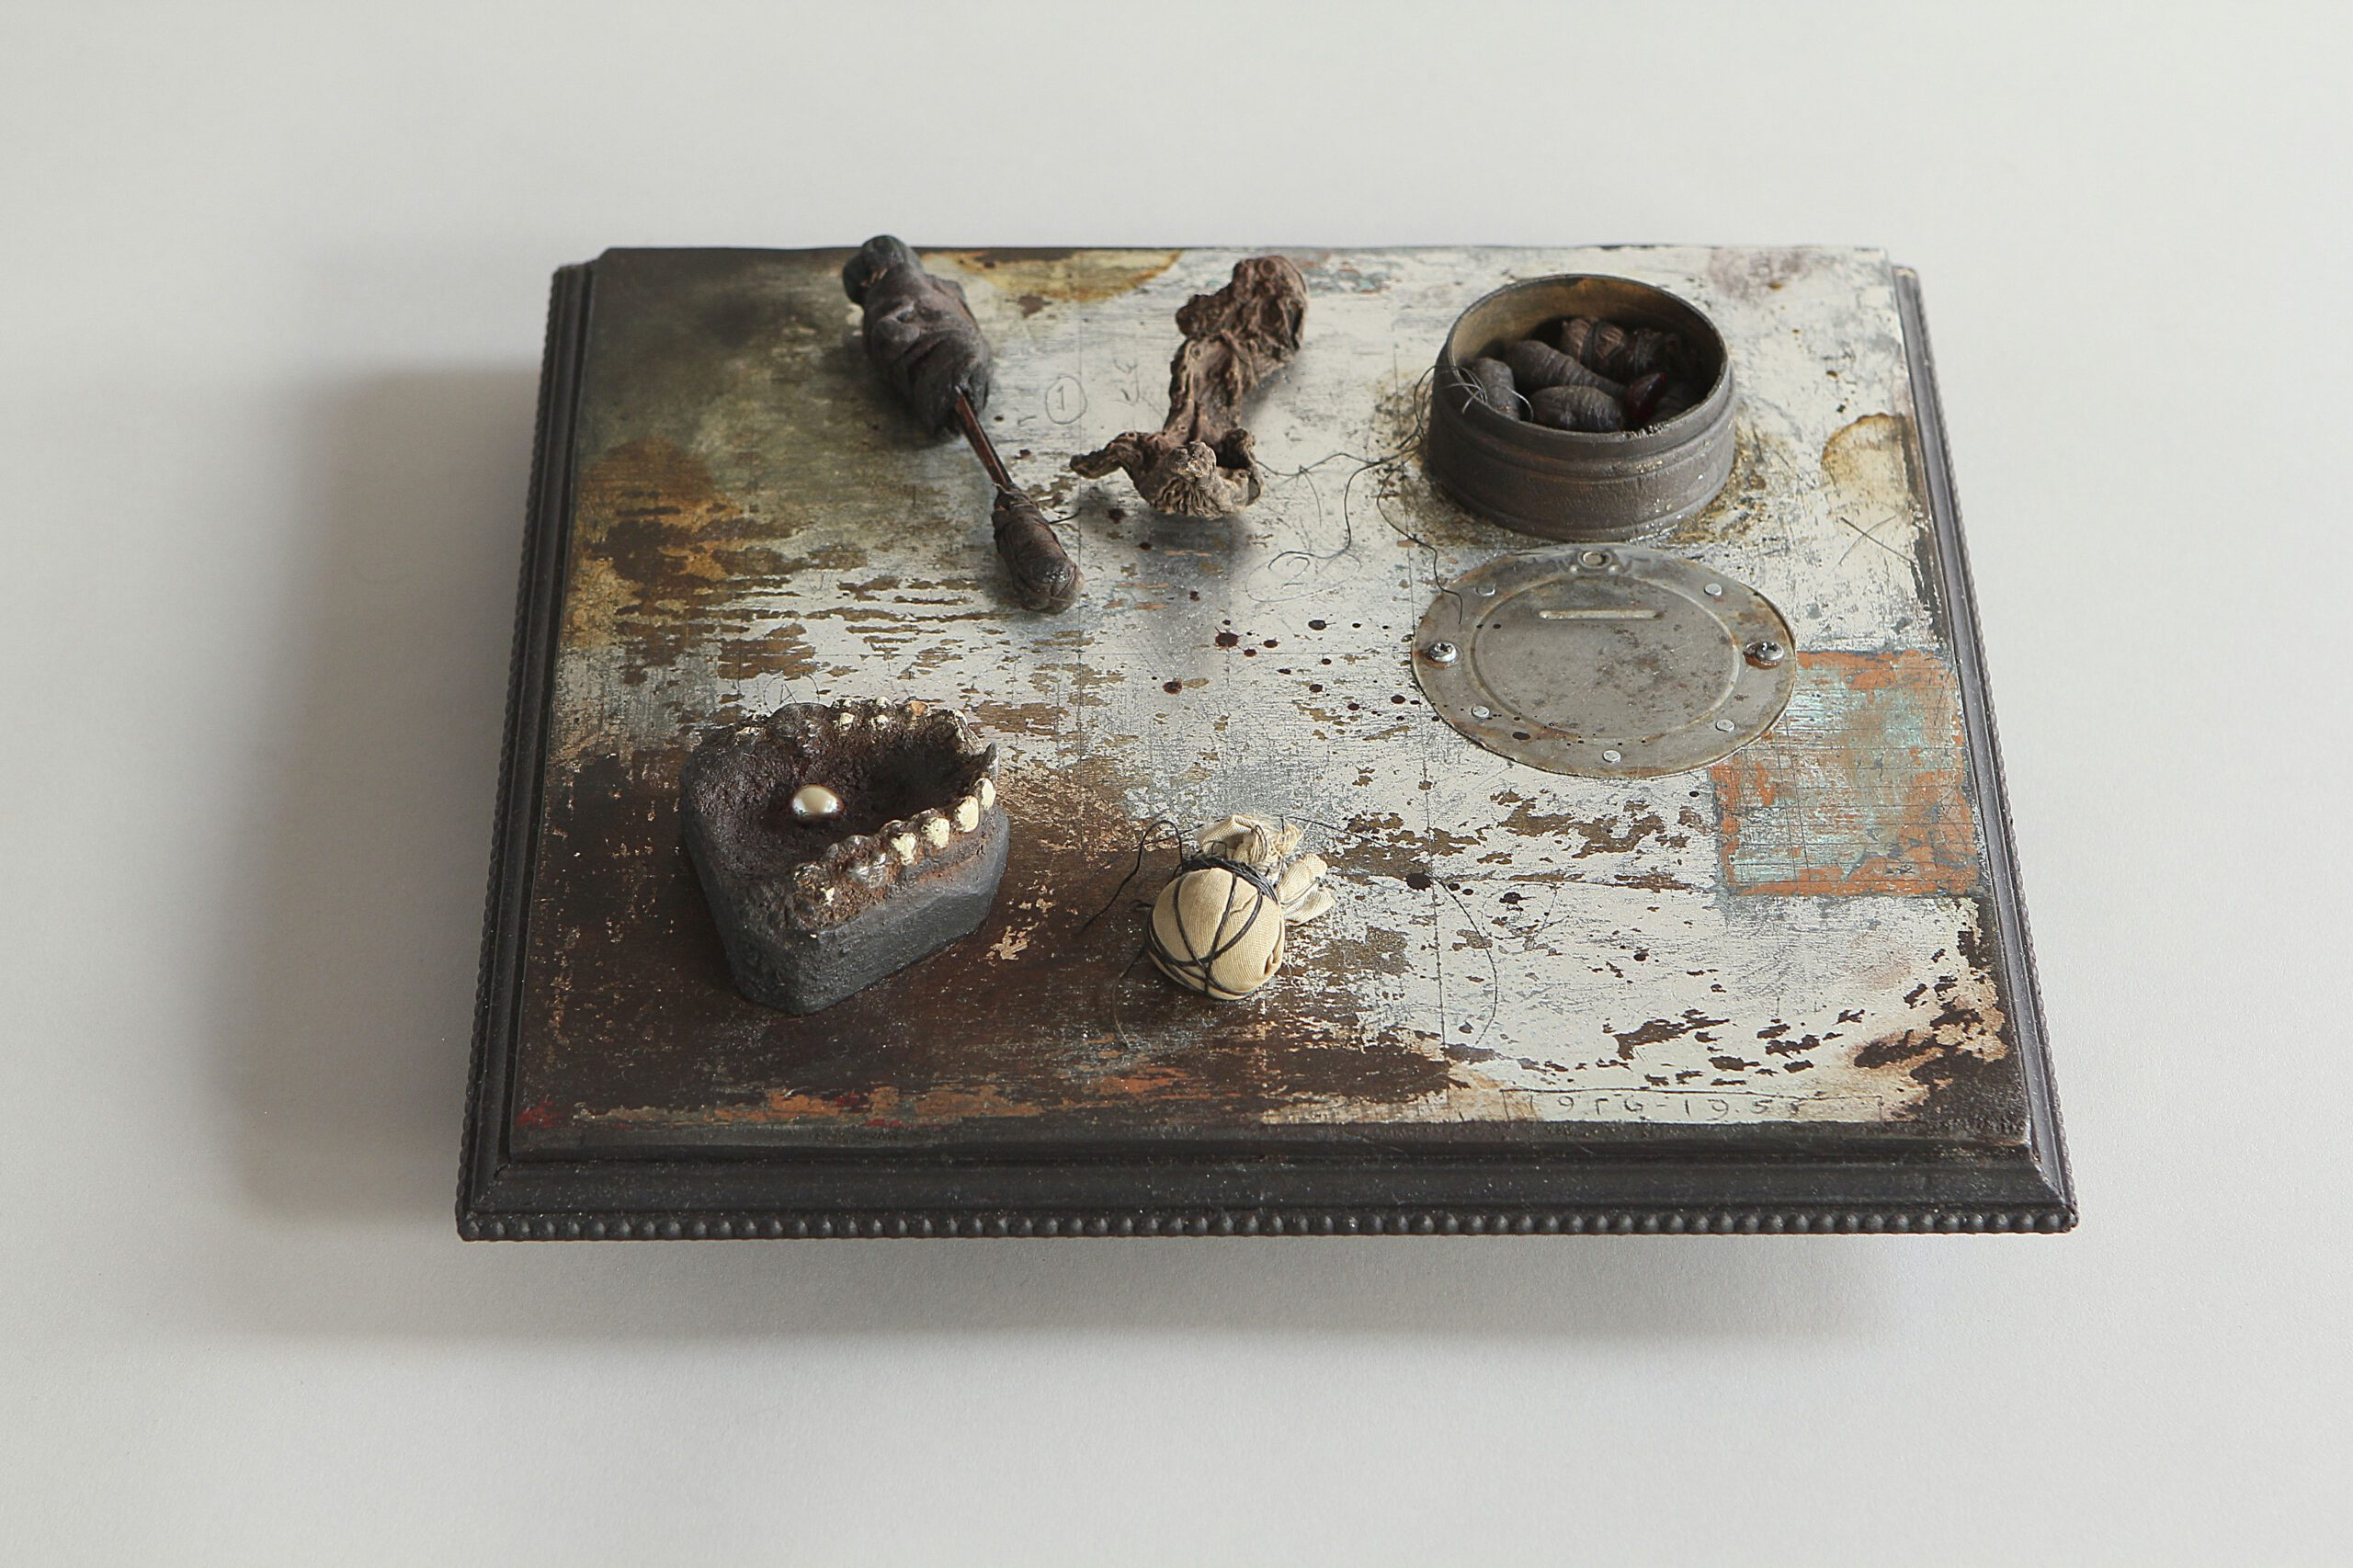 2013 Wood construction, latex paint, silver metal leaf, orris root and found objects  3 x 11.5 x 11 in. - Marc Straus Gallery